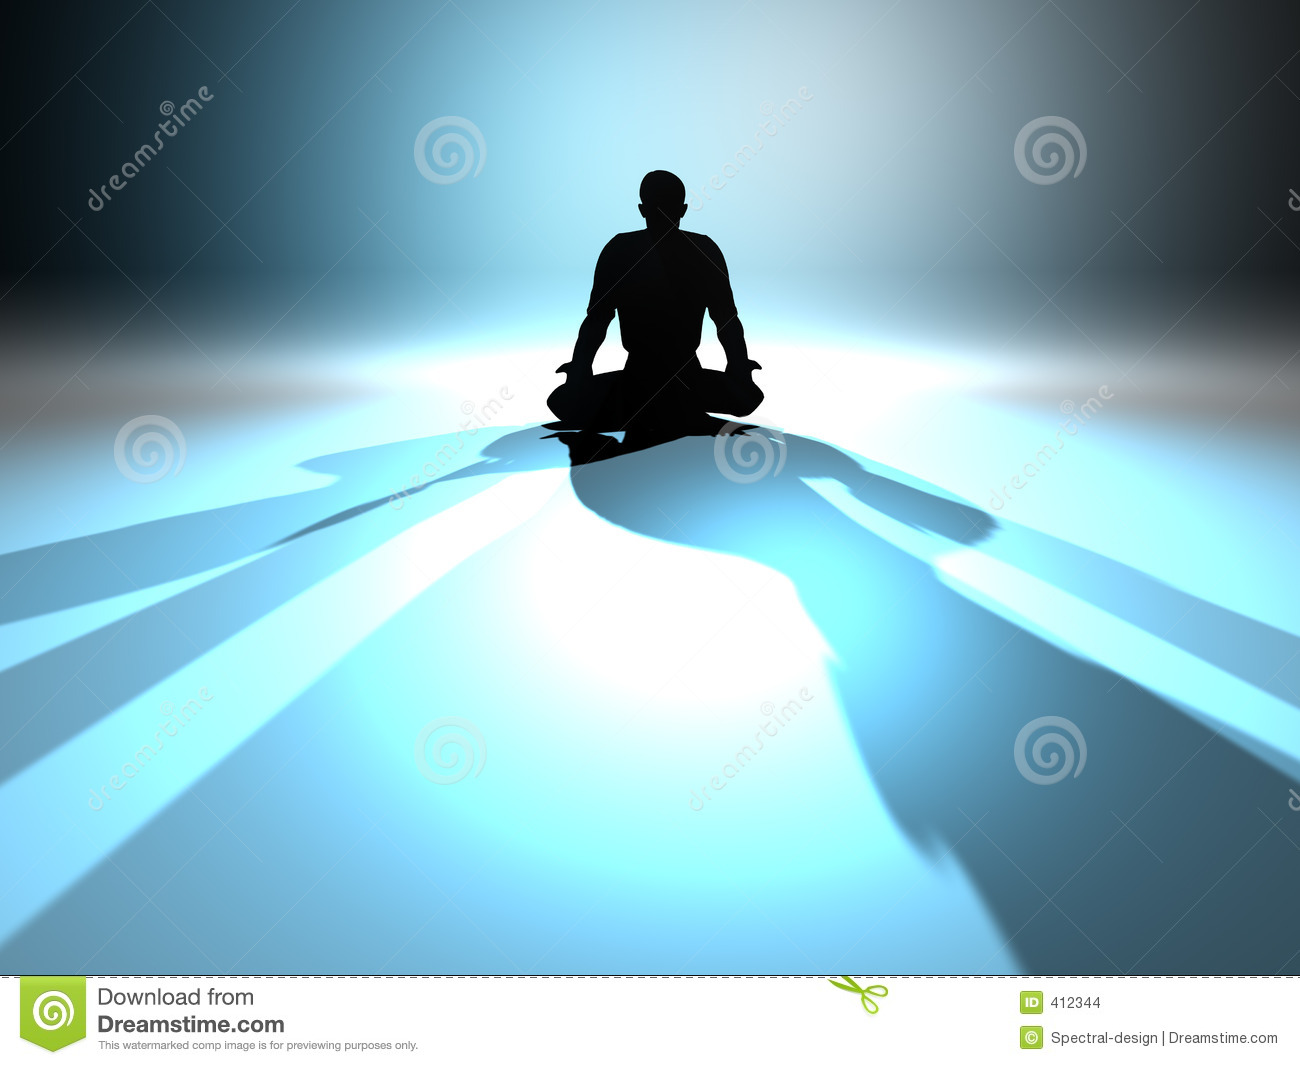 Zen Meditation in a classical Asana. 3D rendered illustration.